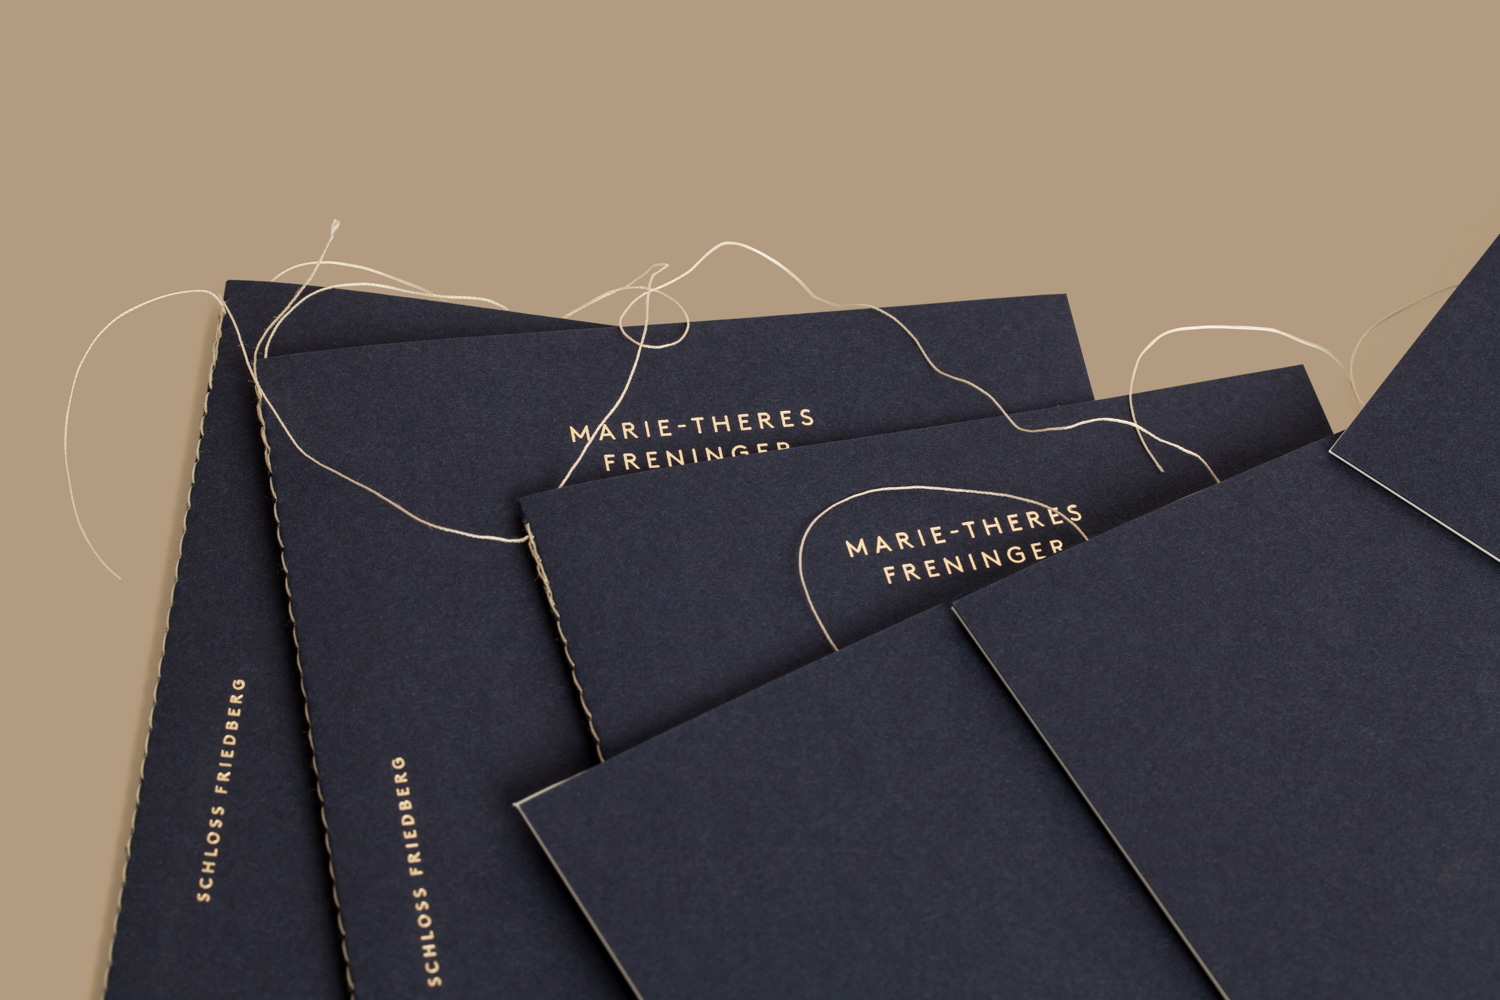 M&A – Wedding Invitation